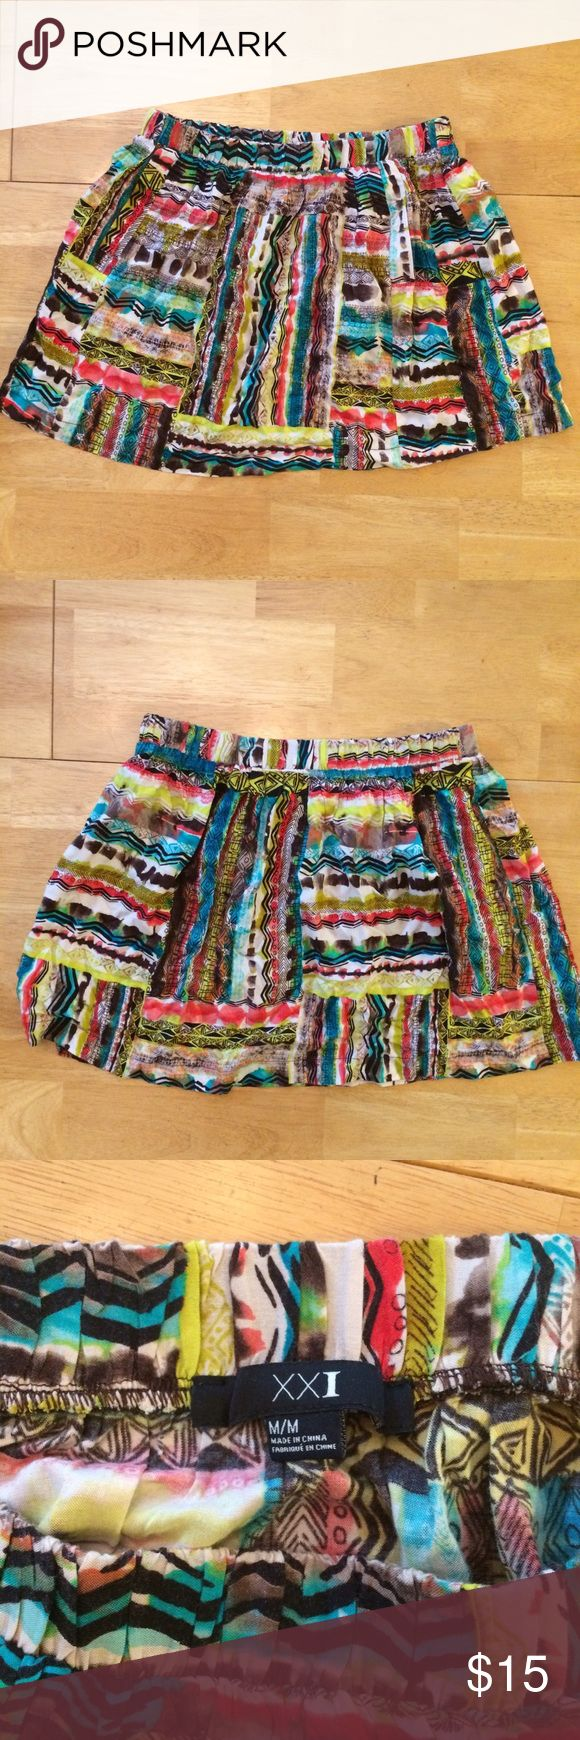 Tribal Print Skirt Forever 21 tribal print skirt. Size M. Brown, yellow, green, and red Forever 21 Skirts Mini